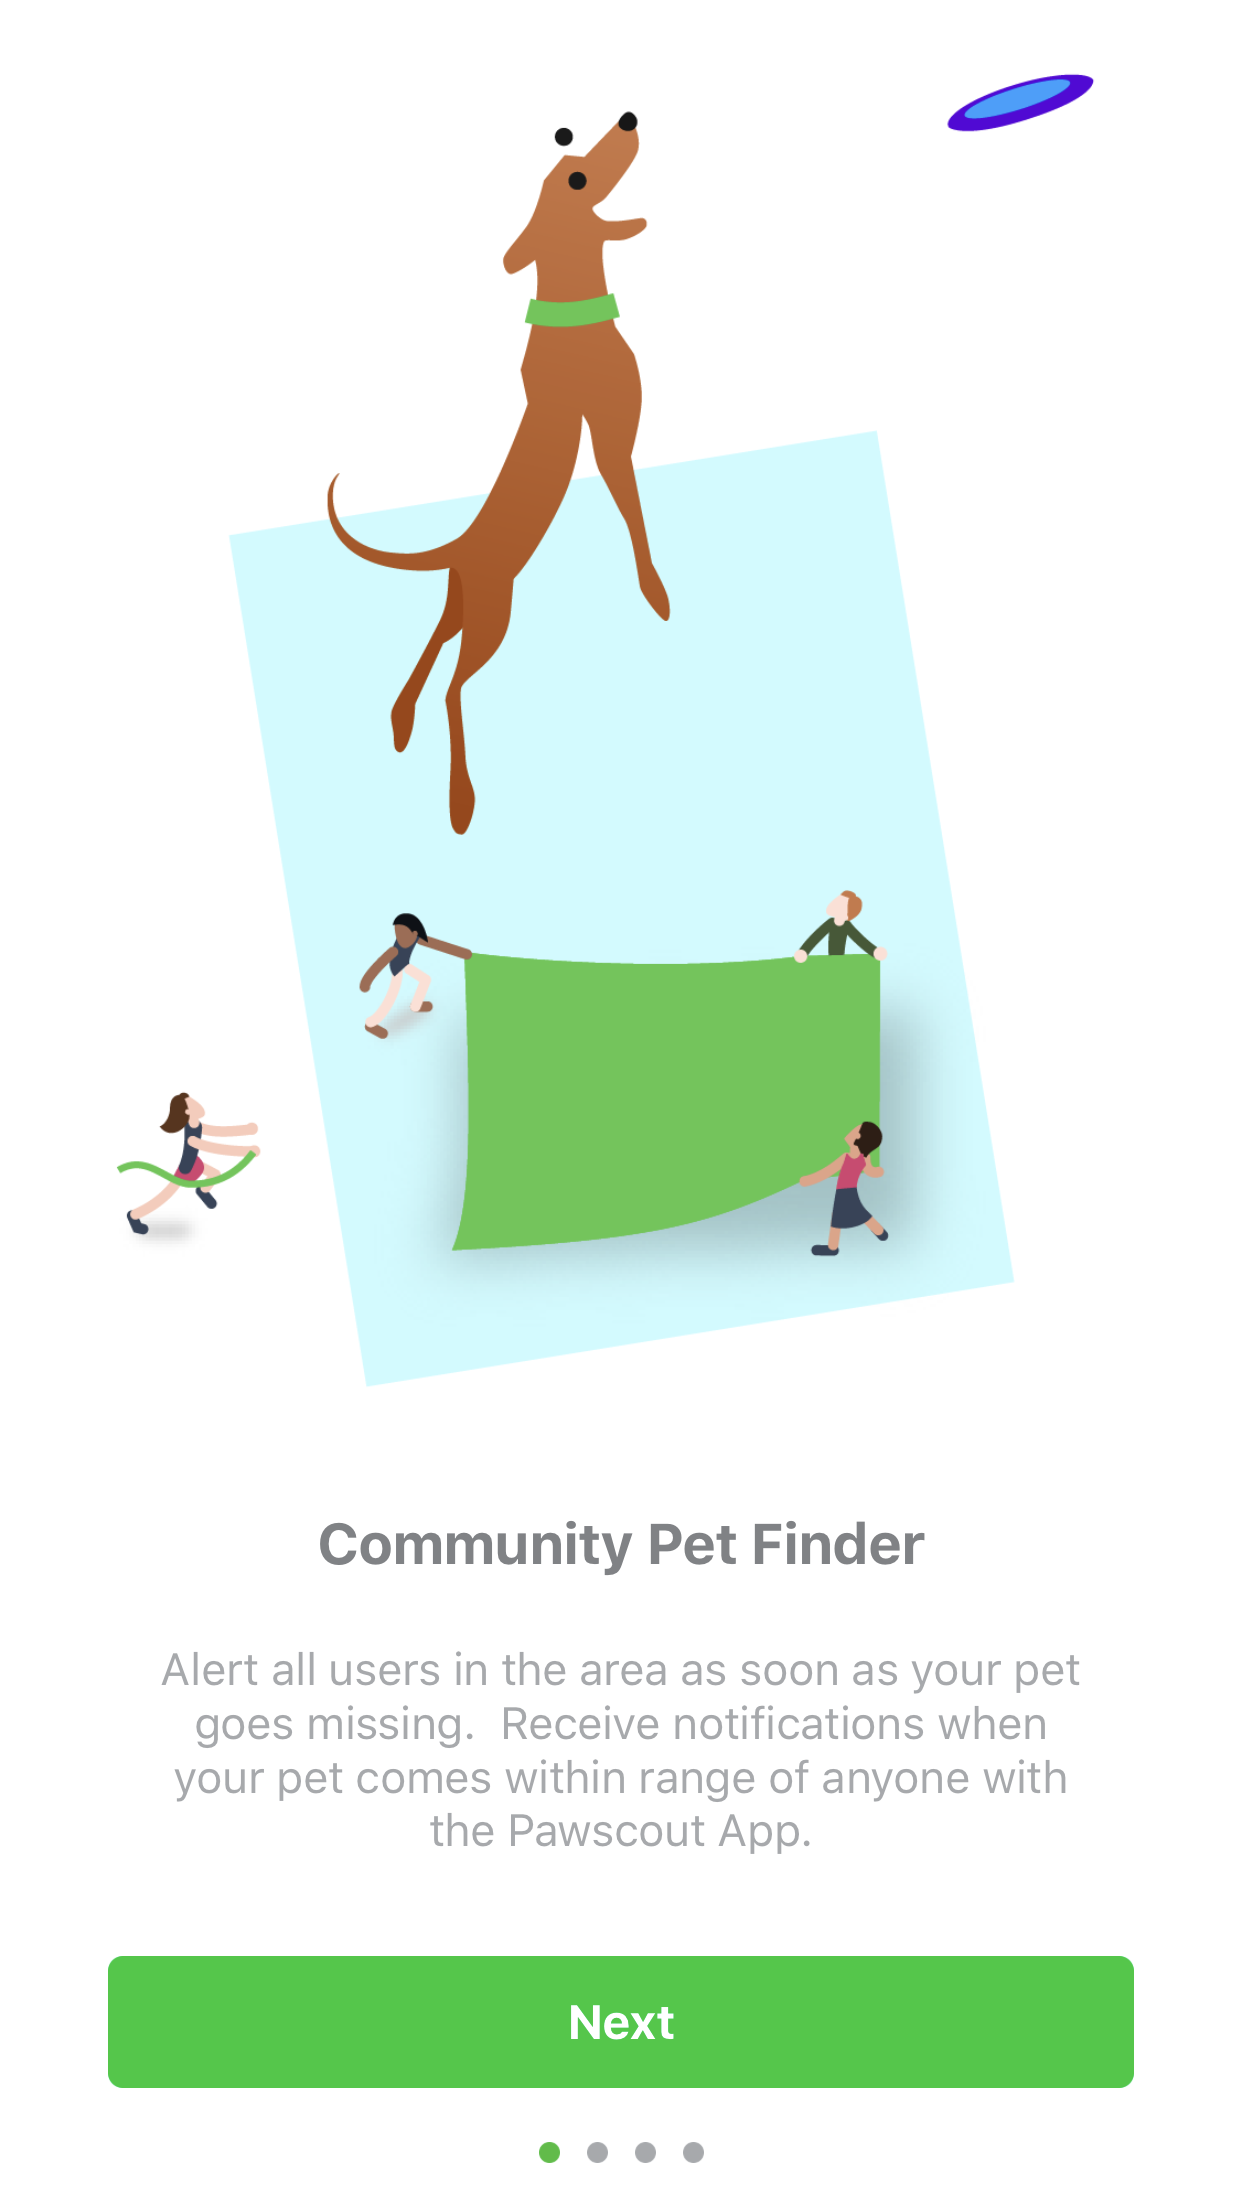 L  OST PET FLYER: If you mark your pet as lost, it sends out an alert to all Pawscout users in your area with your pets detailed pet profile (you'll set this up when you first login to the app)to keep an eye out for your pet. This will let whoever finds your pet know if they are on any medications or if they have any allergies and anything else that is important to know.